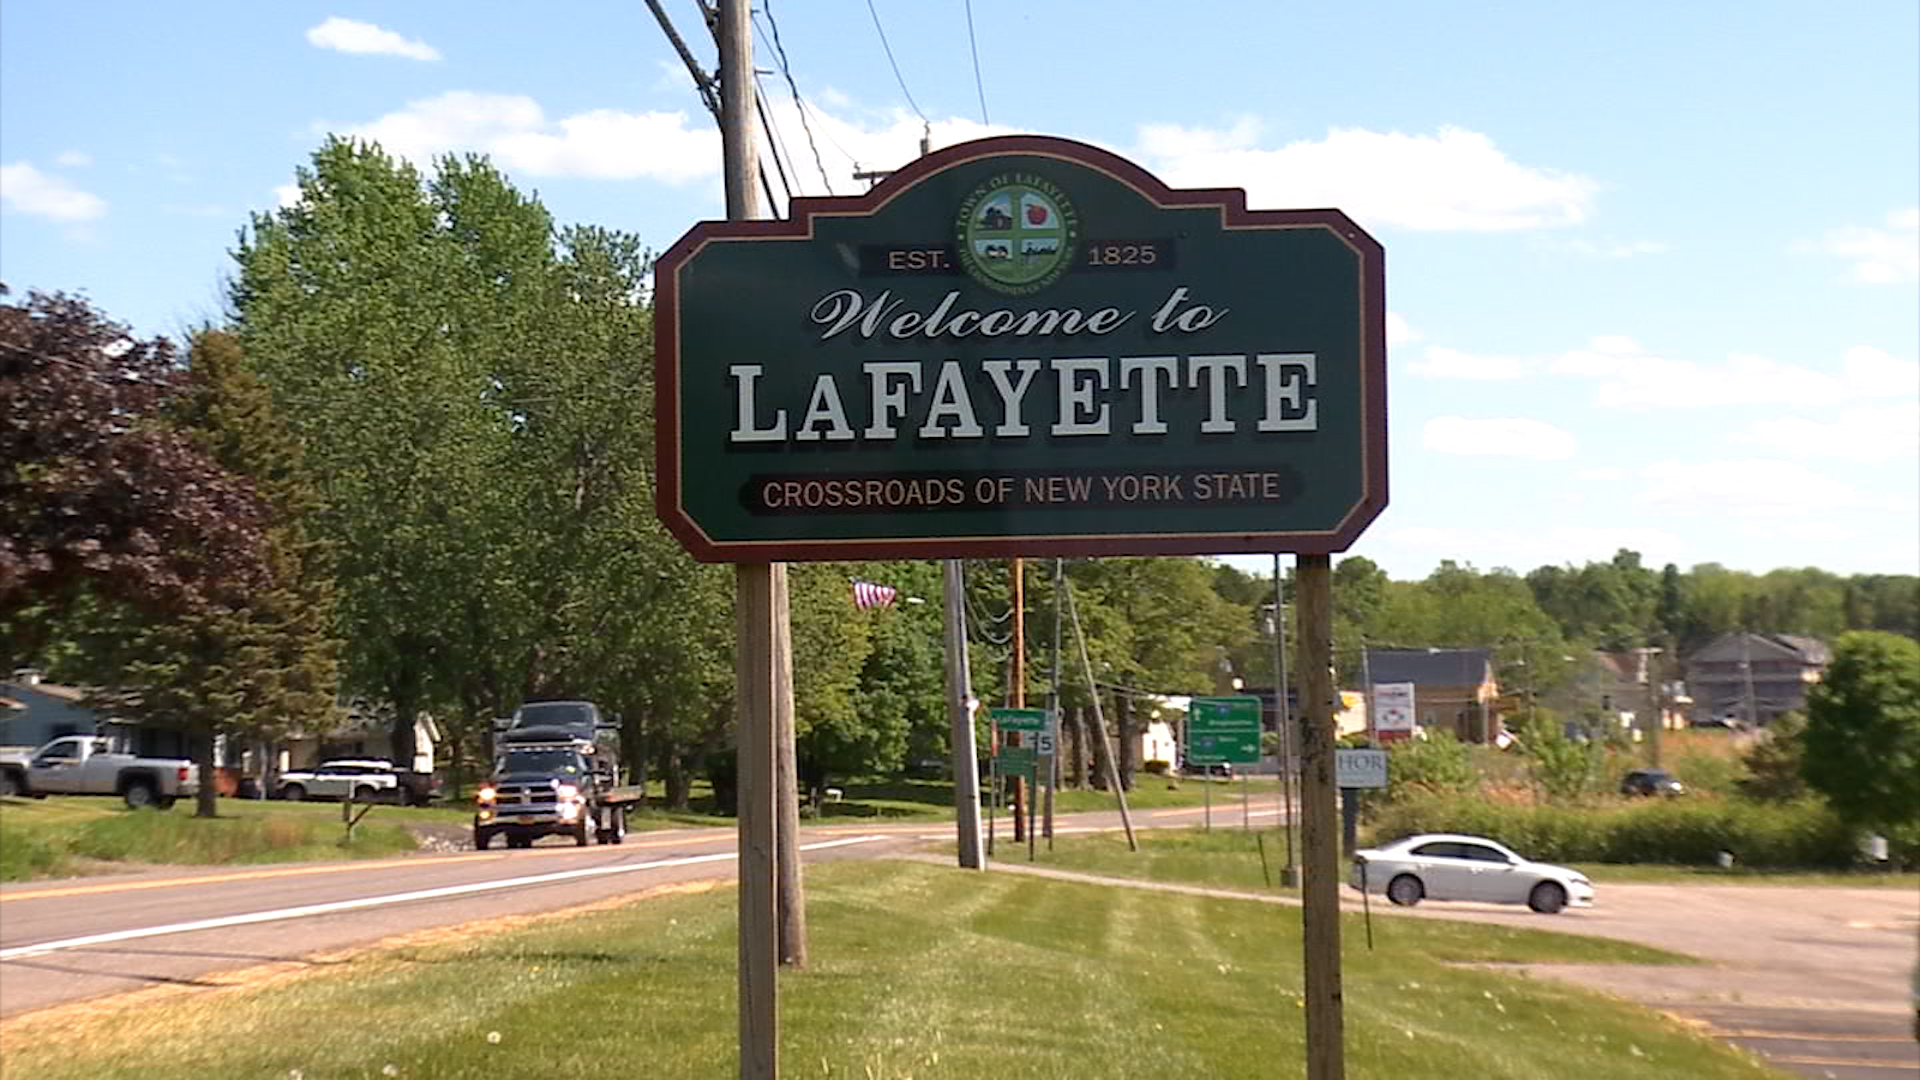 Town of LaFayette sign